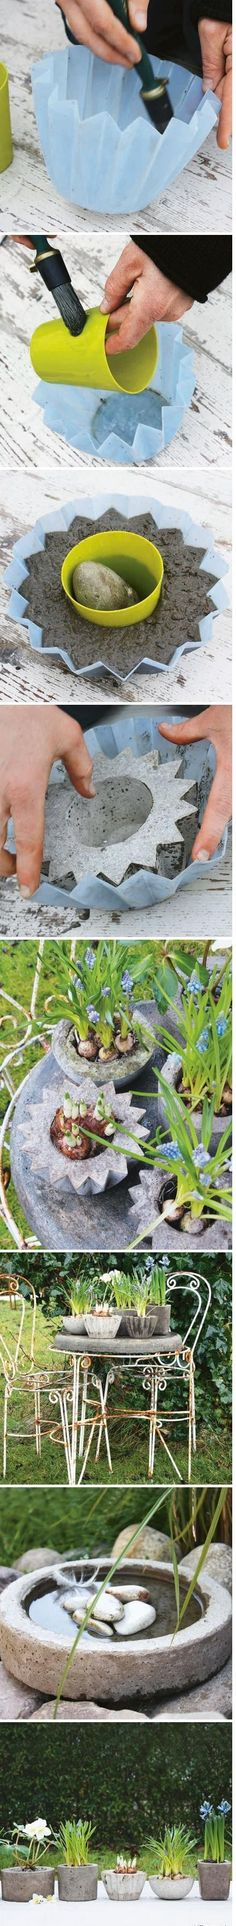 Do it yourself garden decoration - 13 ideas with instructions - DIY garden deco. : Do it yourself garden decoration - 13 ideas with instructions - DIY garden deco. Garden Crafts, Diy Garden Decor, Garden Projects, Diy Crafts, Diy Projects, Diy Decoration, Mosaic Projects, Garden Decorations, Concrete Planters